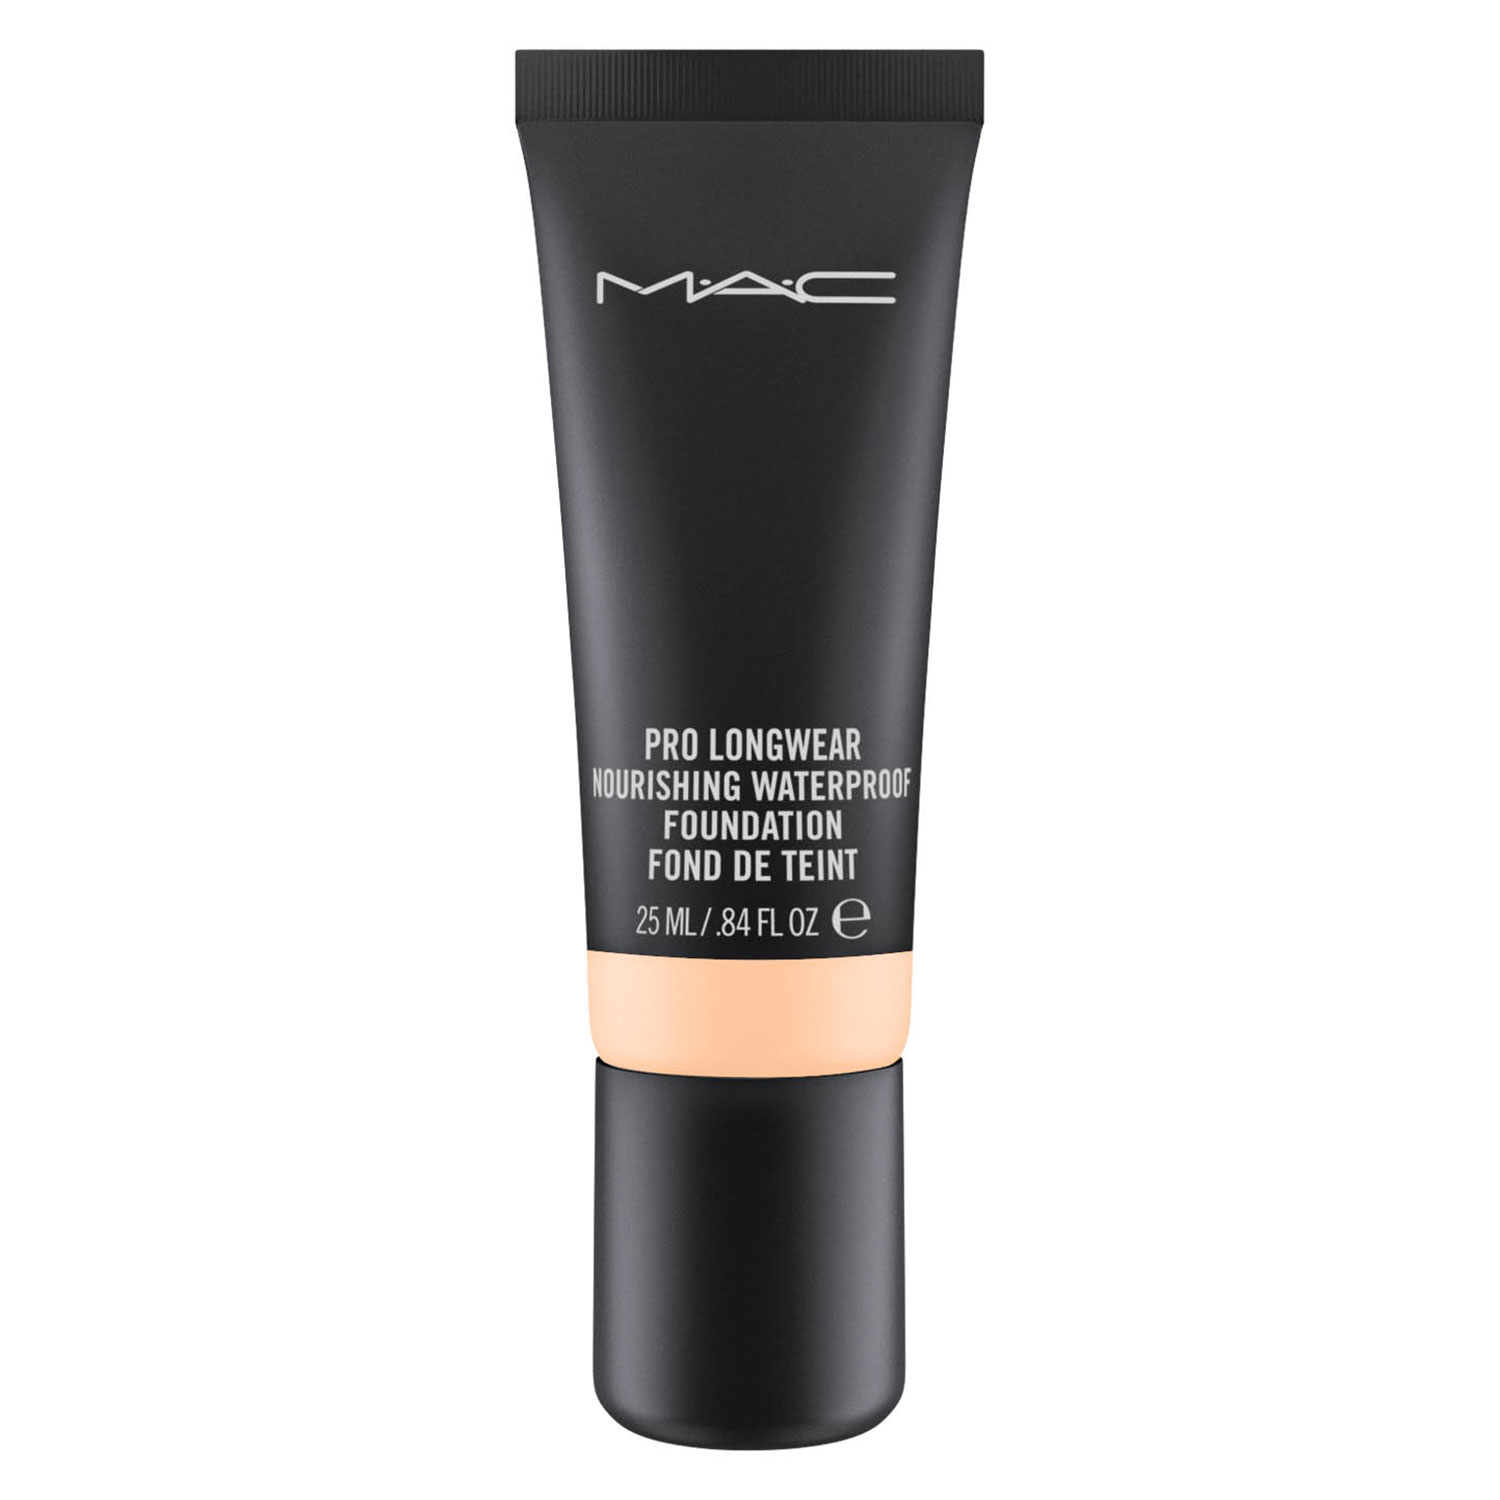 Pro Longwear - Nourishing Waterproof Foundation NW22